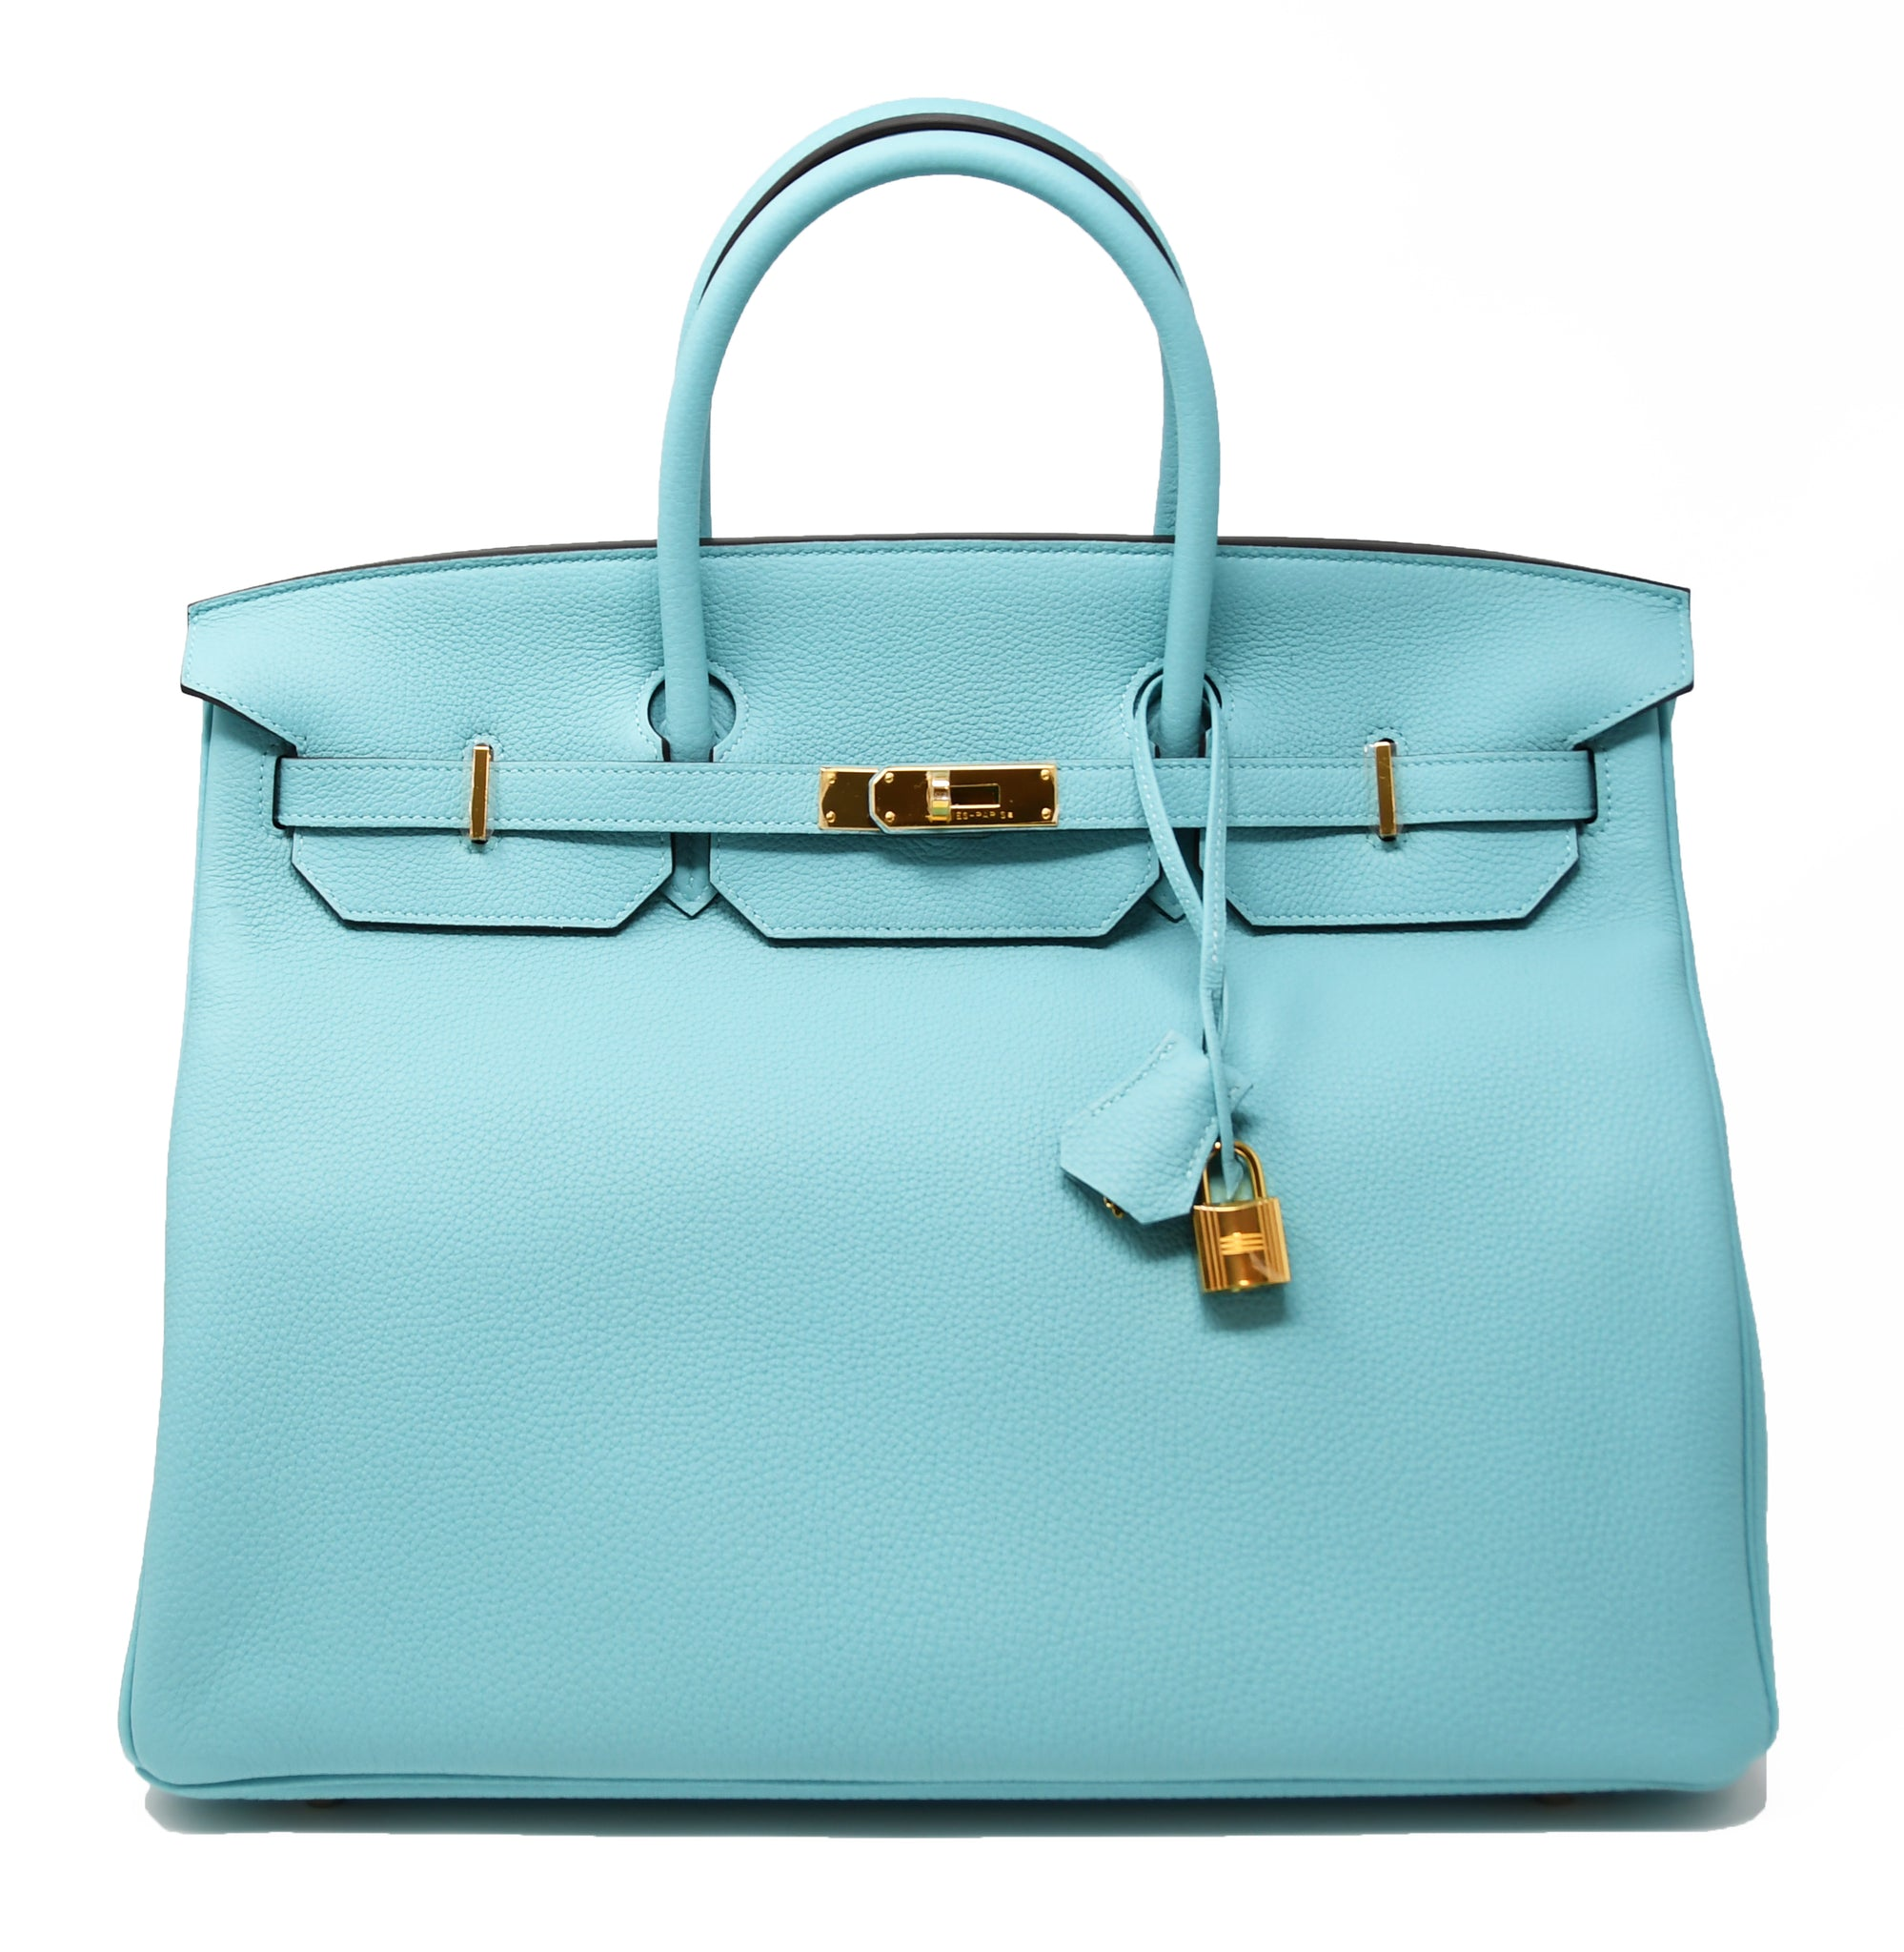 Hermes Birkin Bag 40cm Blue Atoll with Gold Hardware